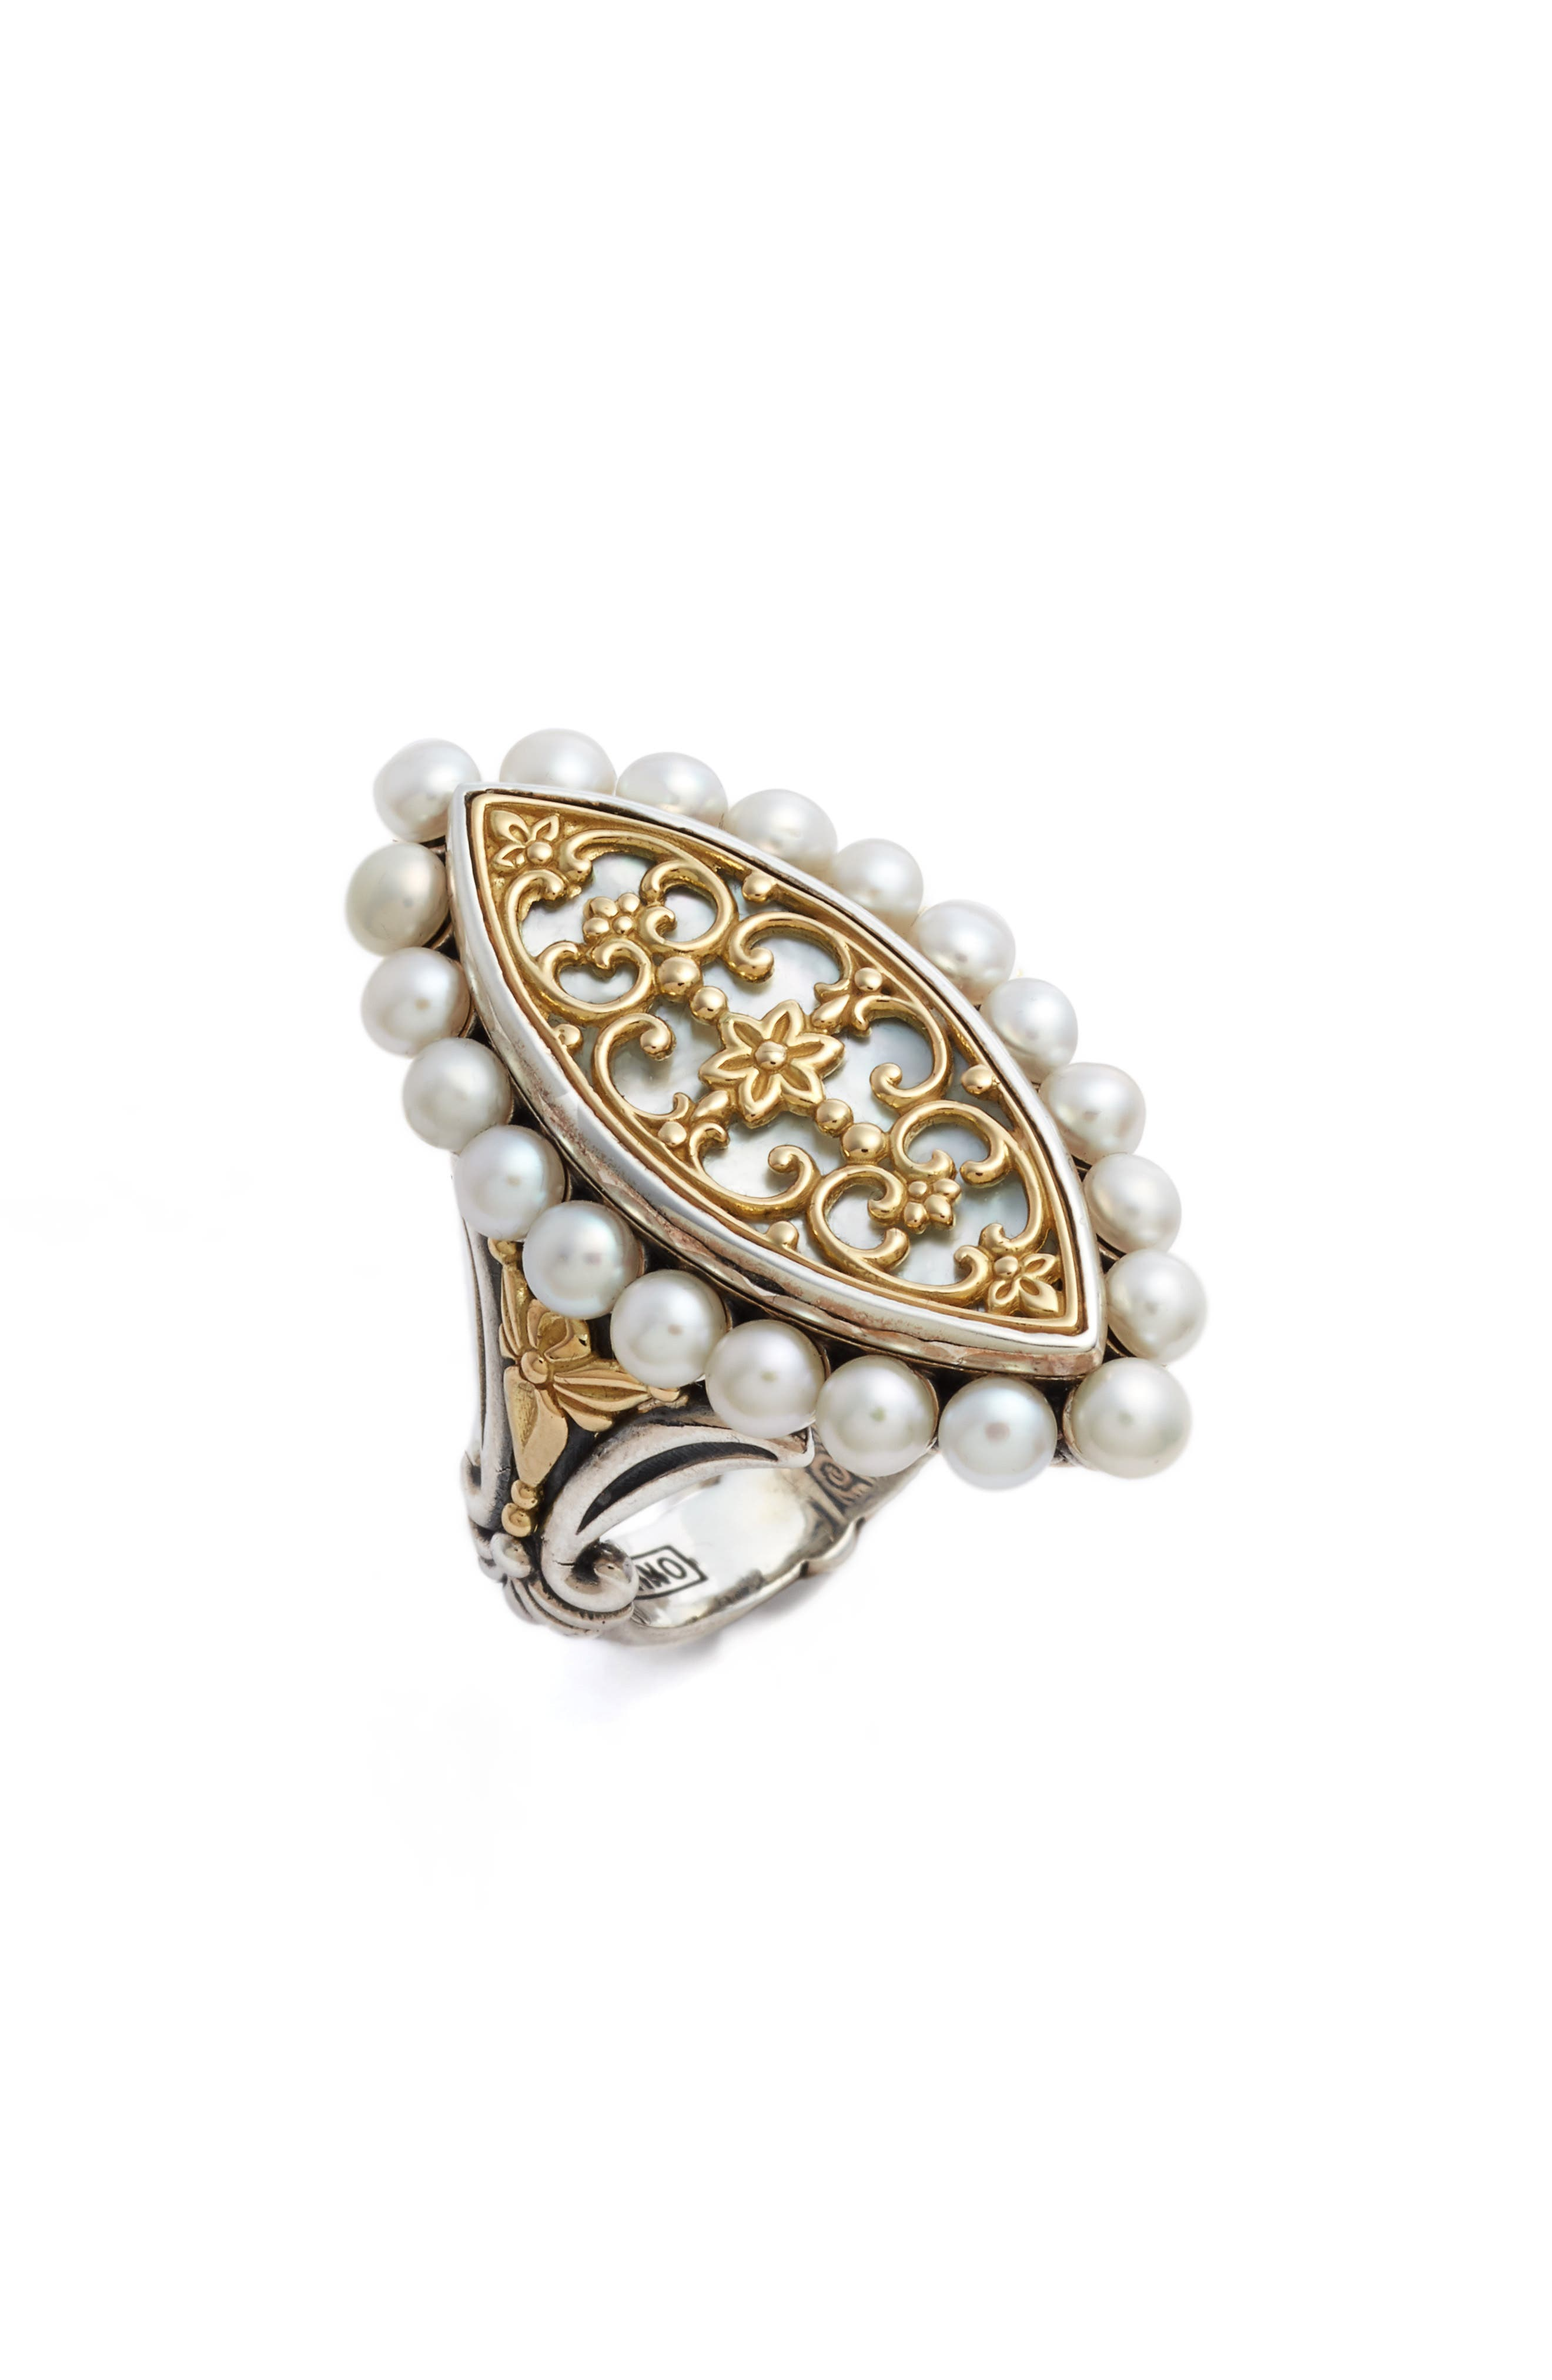 Sterling & Cultured Pearl Marquise Ring,                         Main,                         color, Silver/ Gold/ White